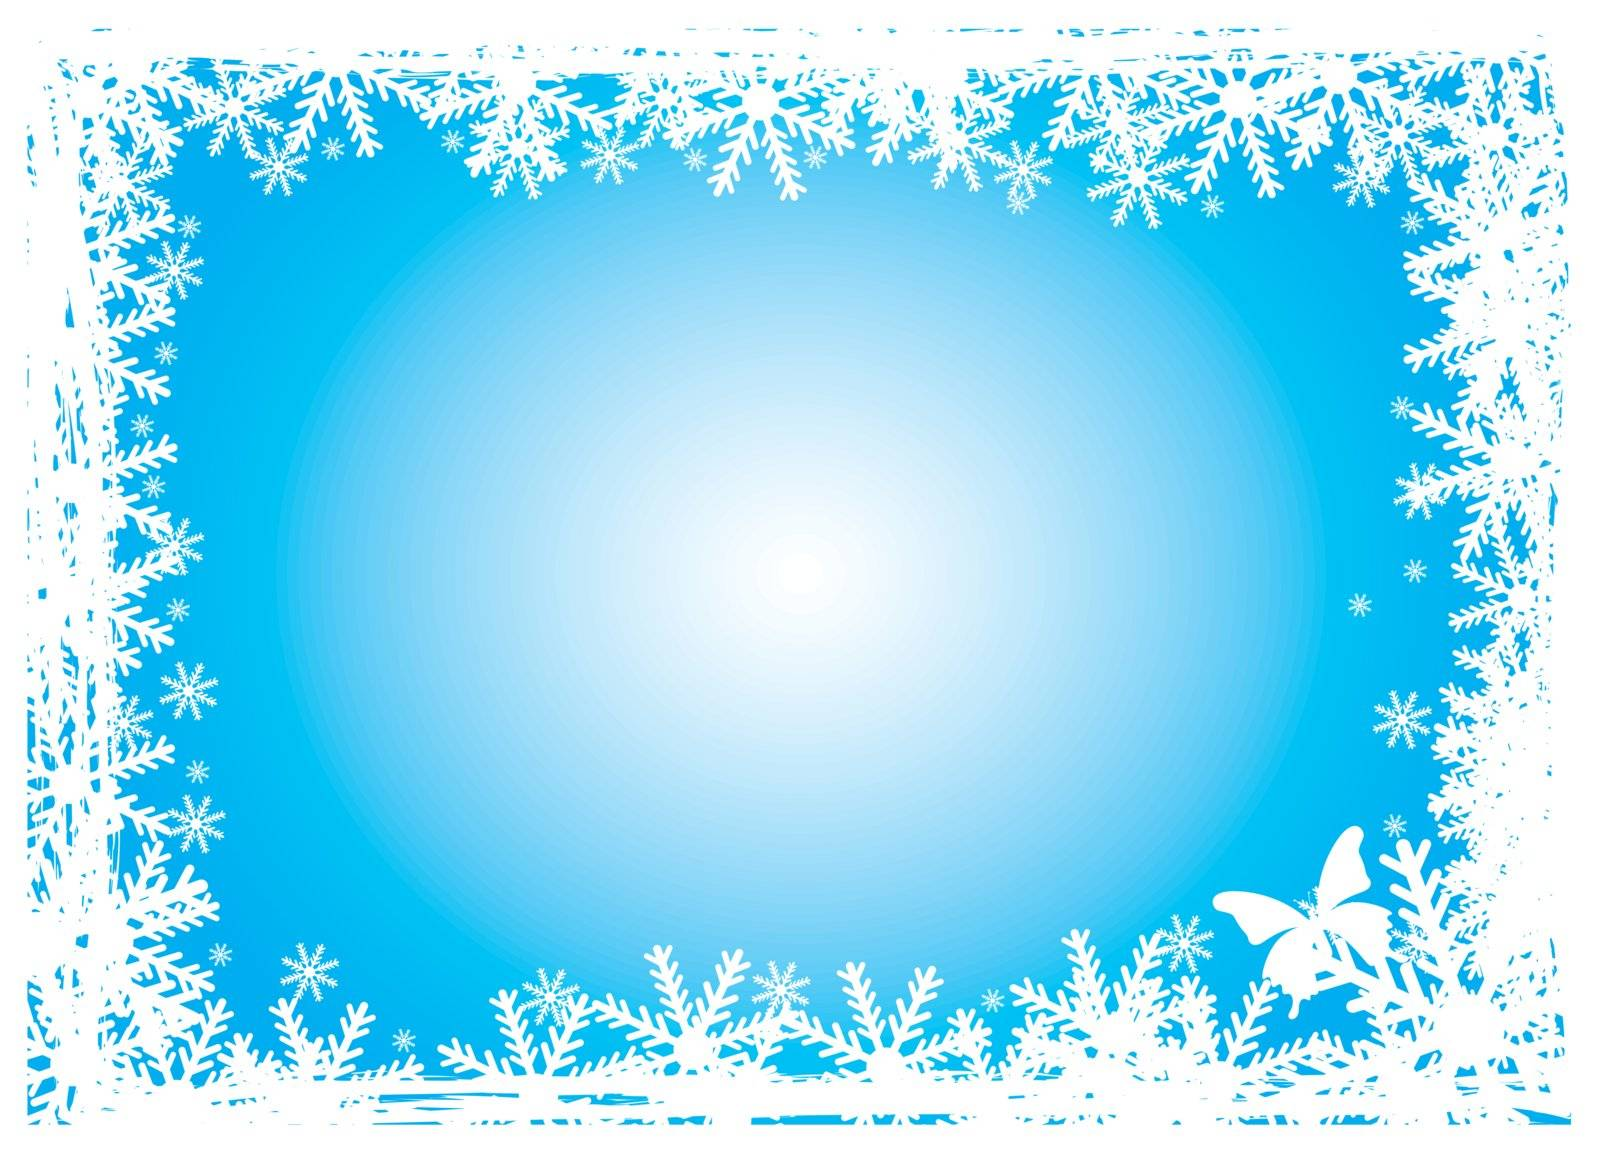 blue background with snow and delineated edge of butterfly